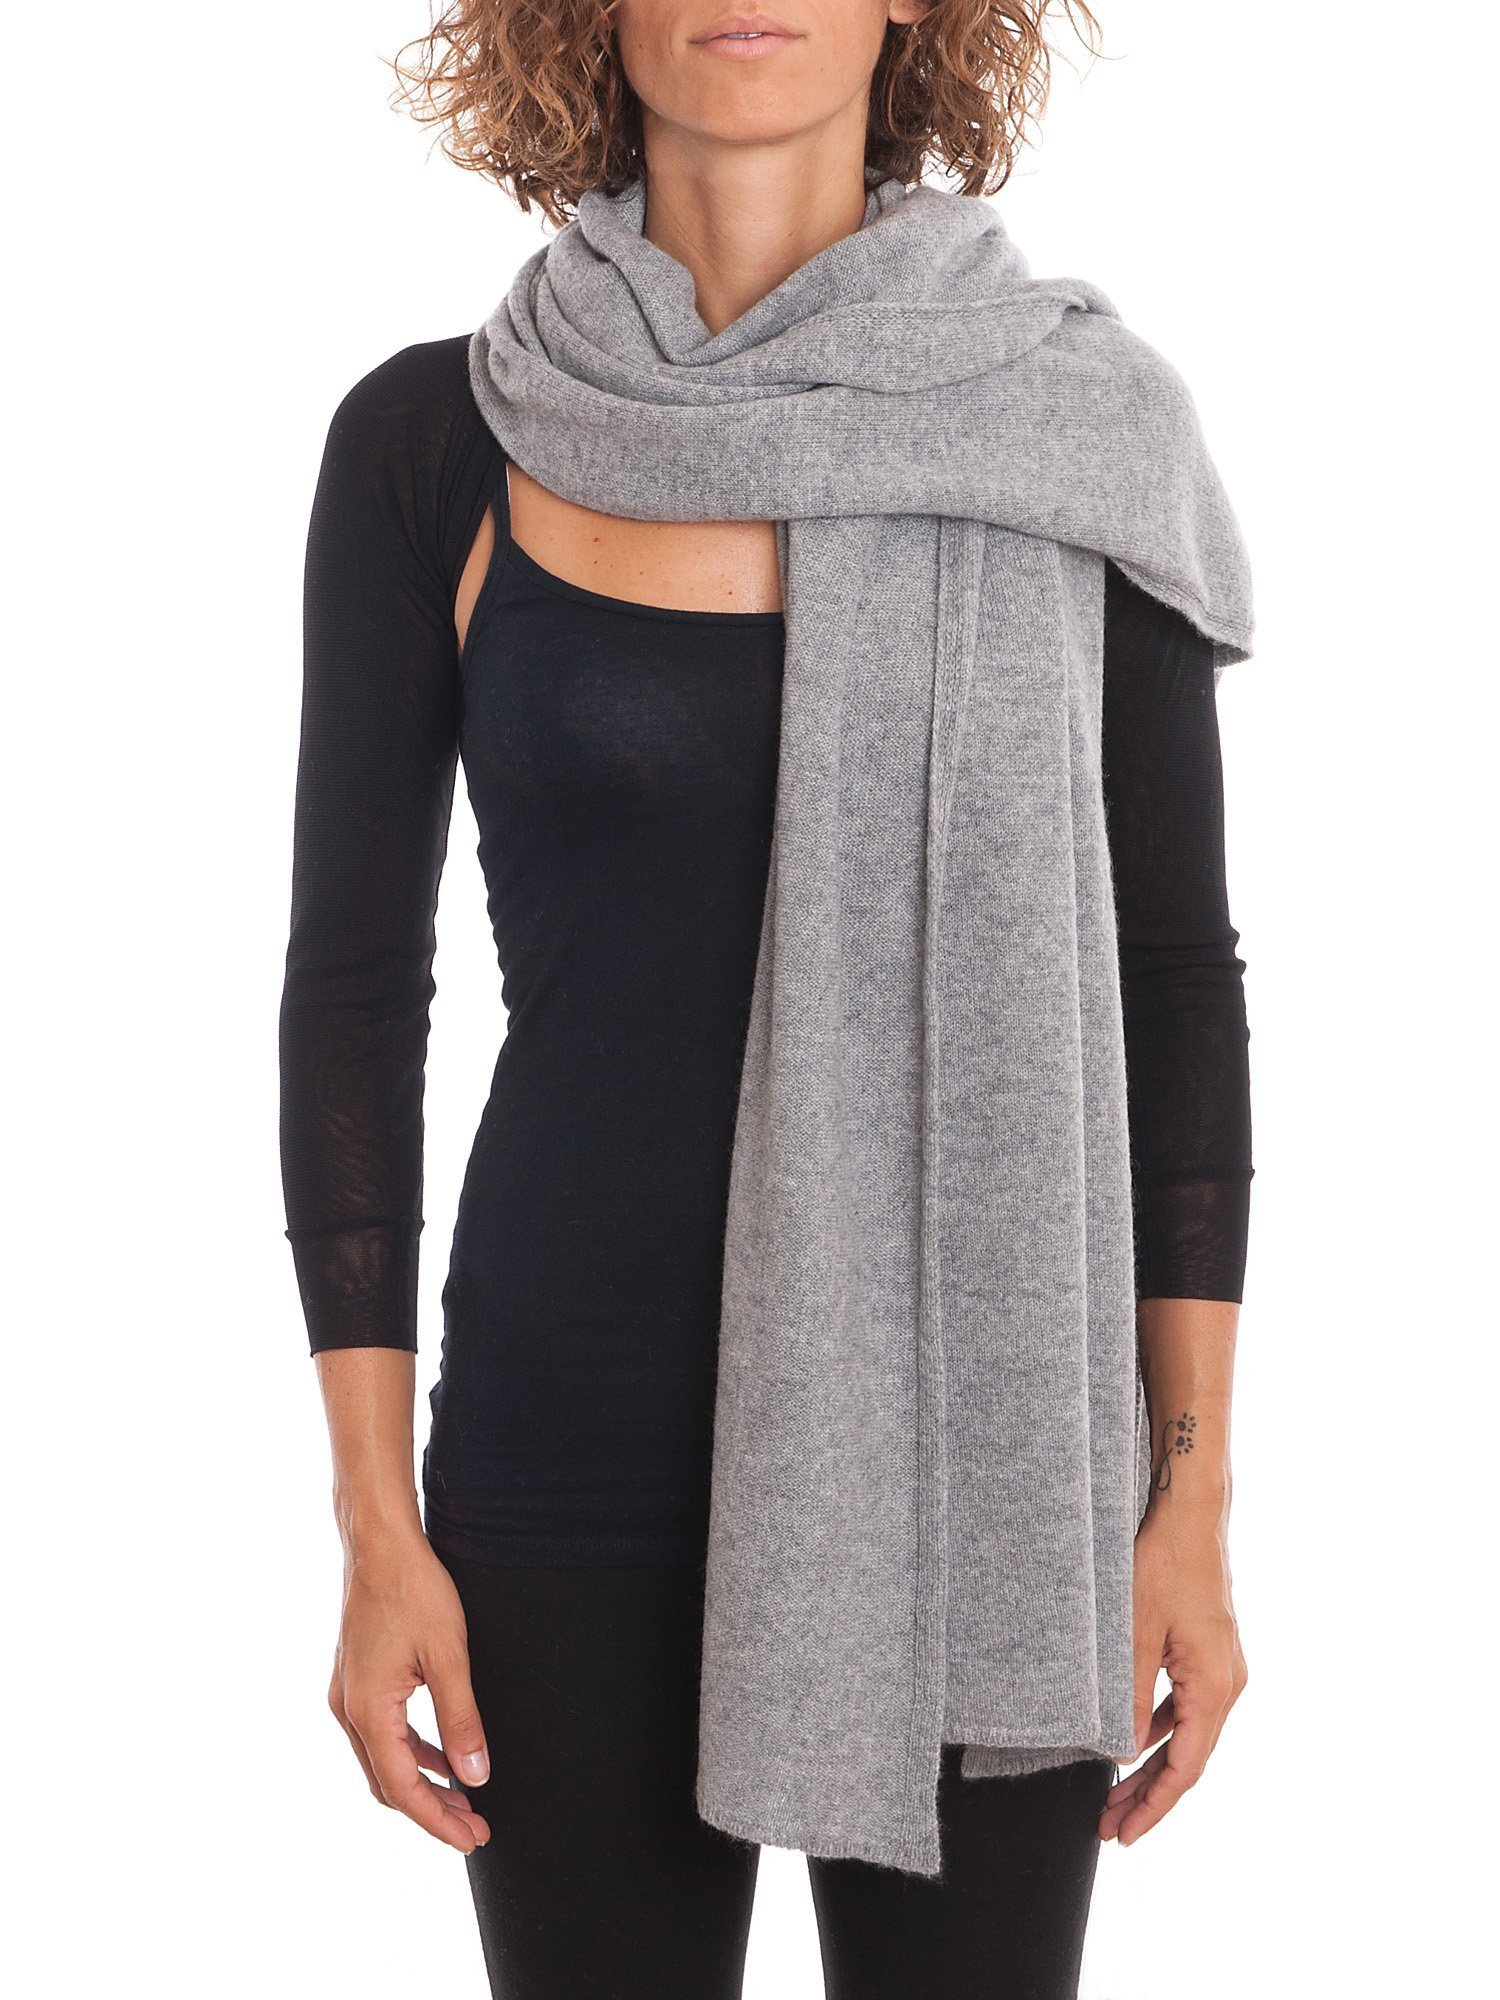 Dalle Piane Cashmere - Stole 100% cashmere - Made in Italy, Color: Grey, One size